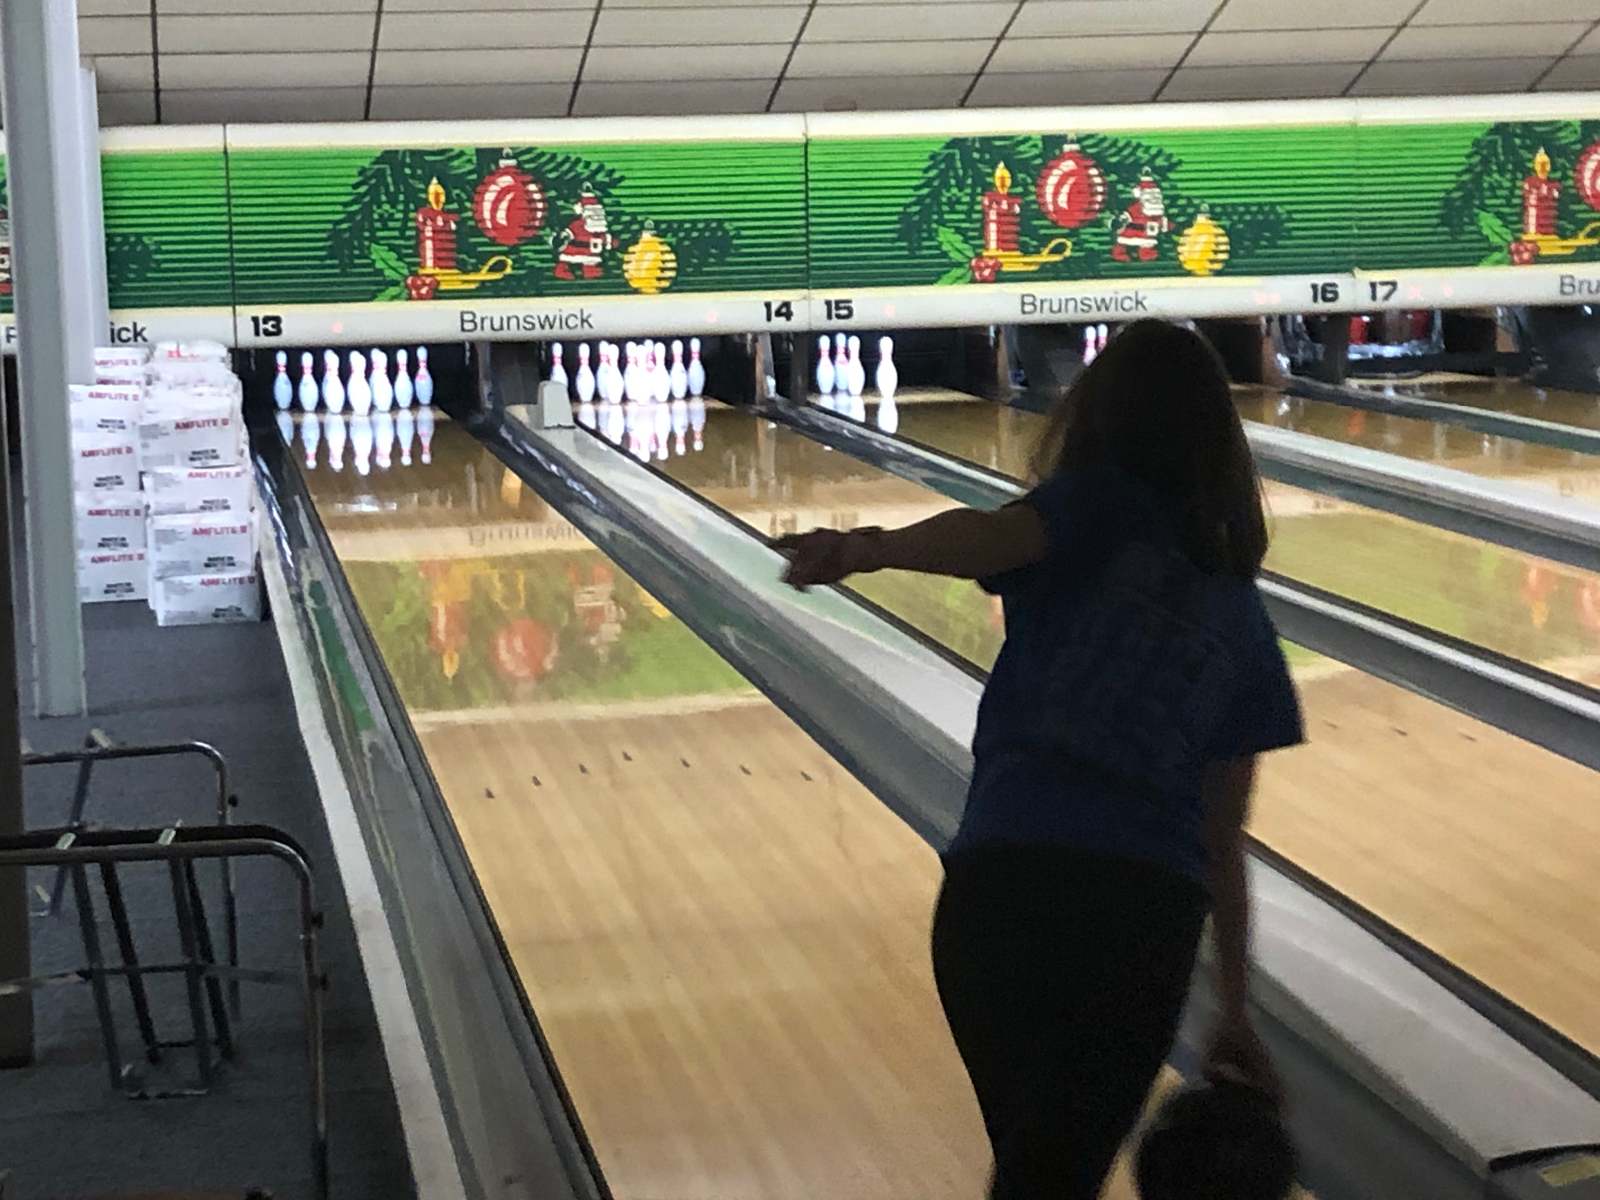 Individual Bowlers Move On